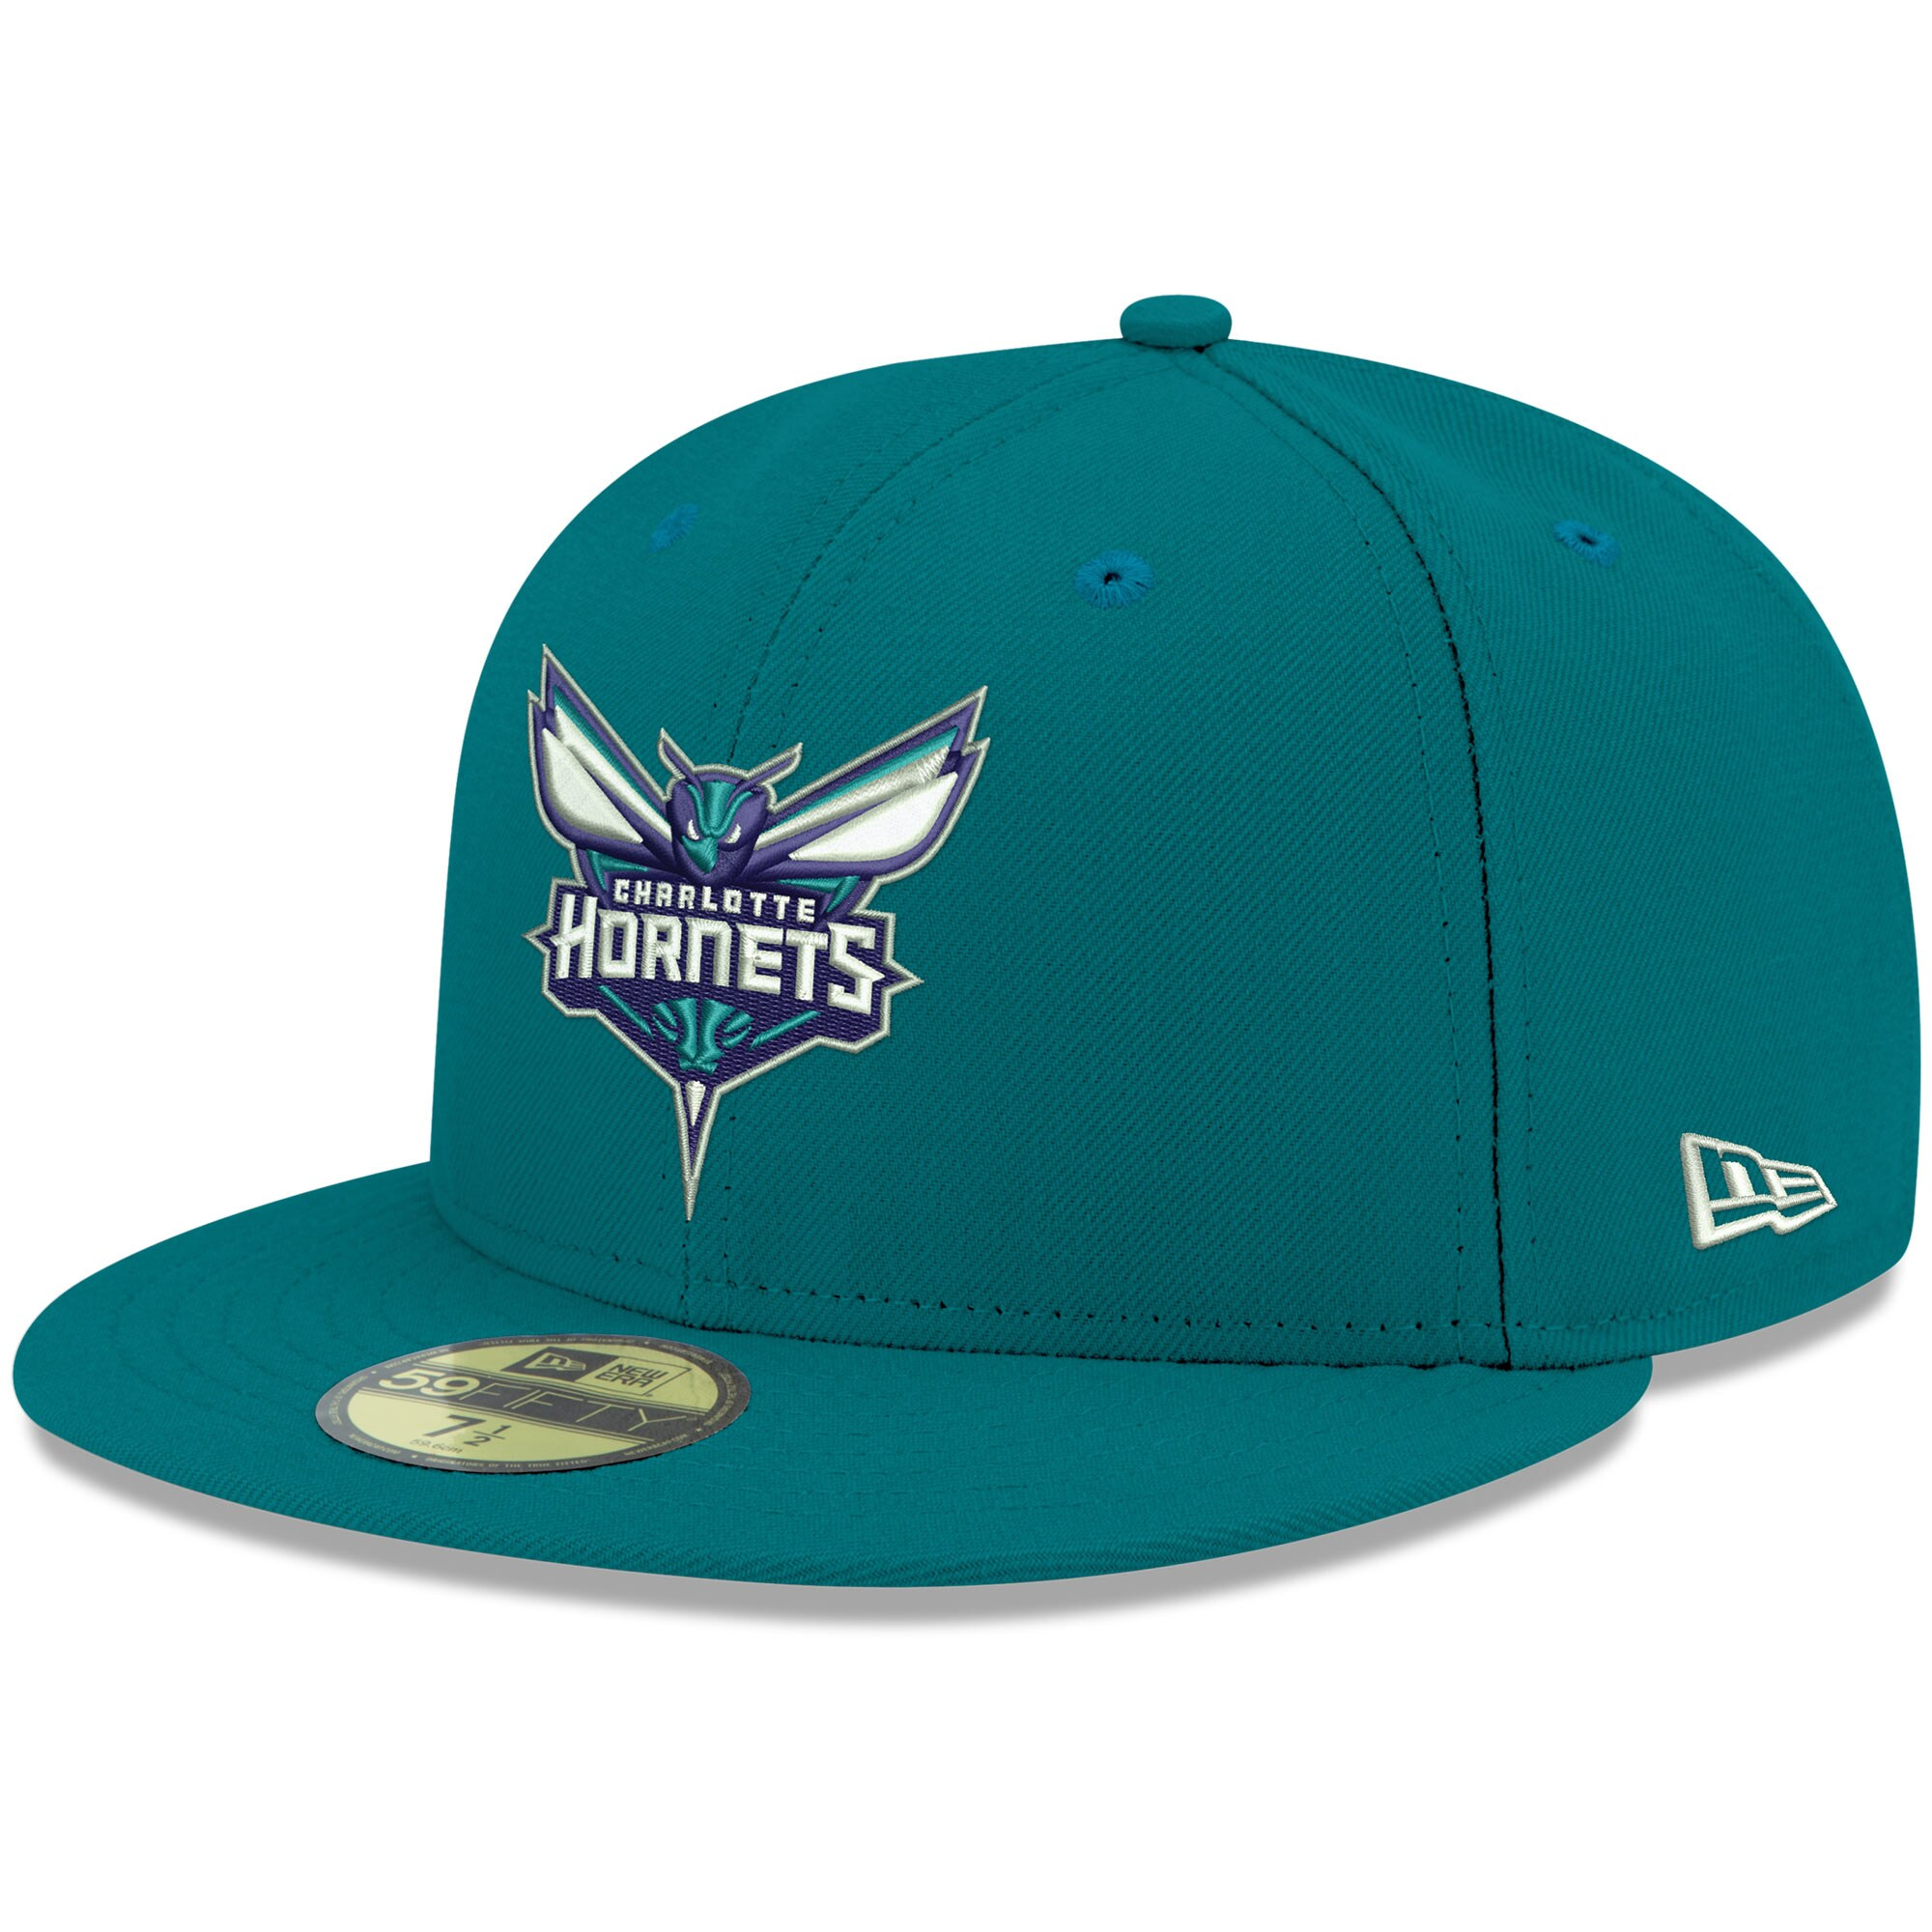 Charlotte Hornets New Era Official Team Color 59FIFTY Fitted Hat - Teal